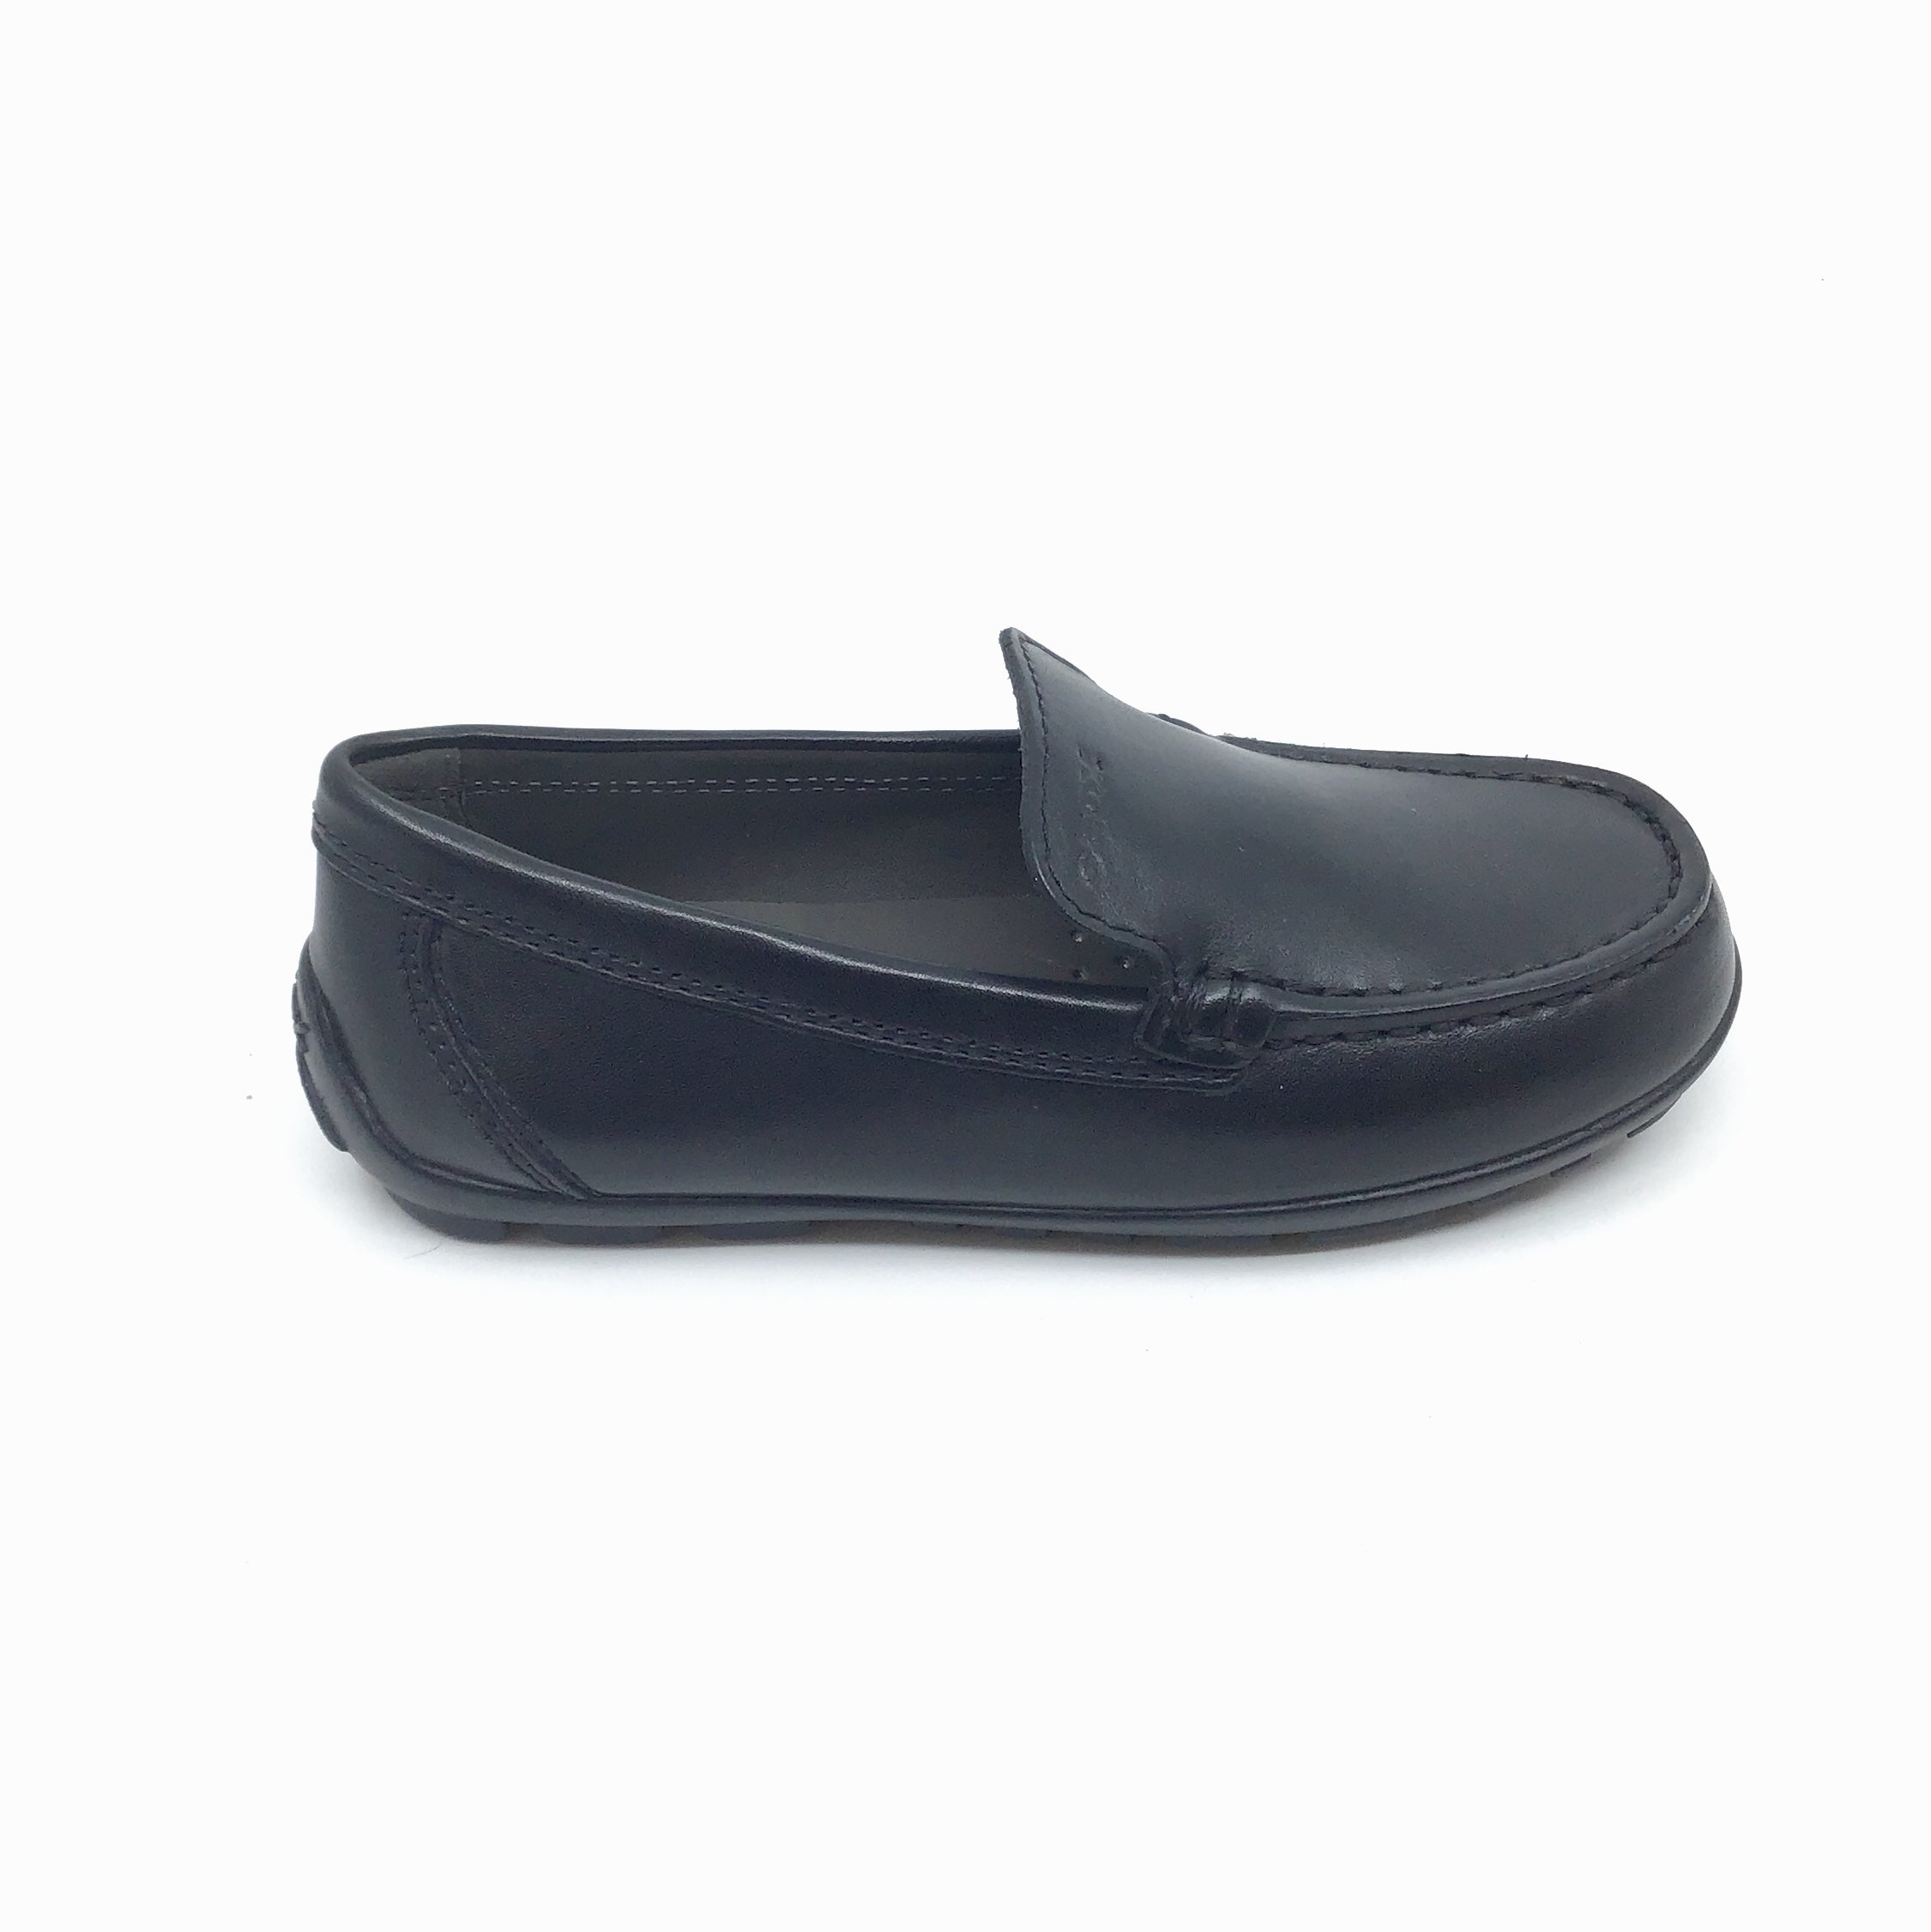 Geox Black Loafer